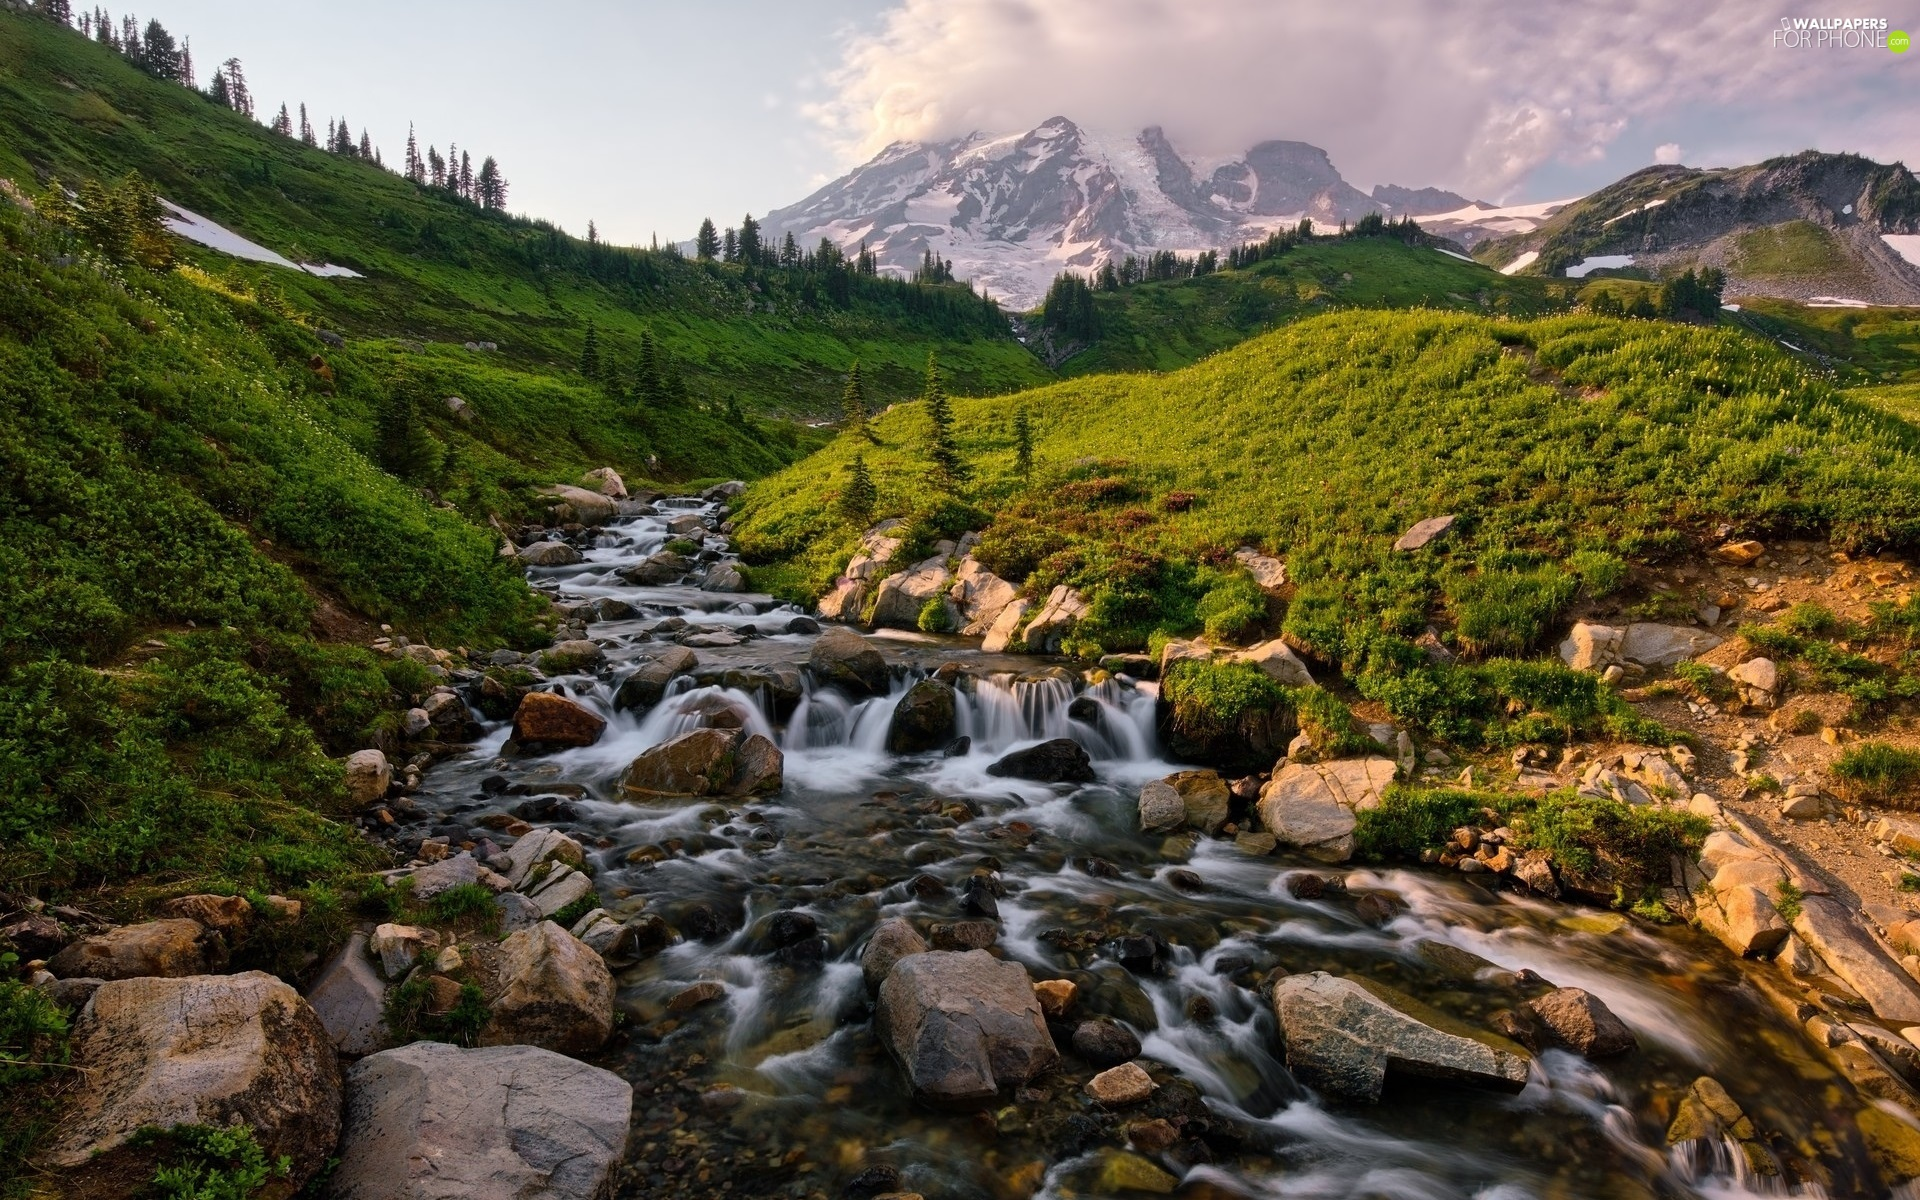 Mountains, River, Washington State, Stones, Mount Rainier National Park, Mount Rainier Peak, The United States